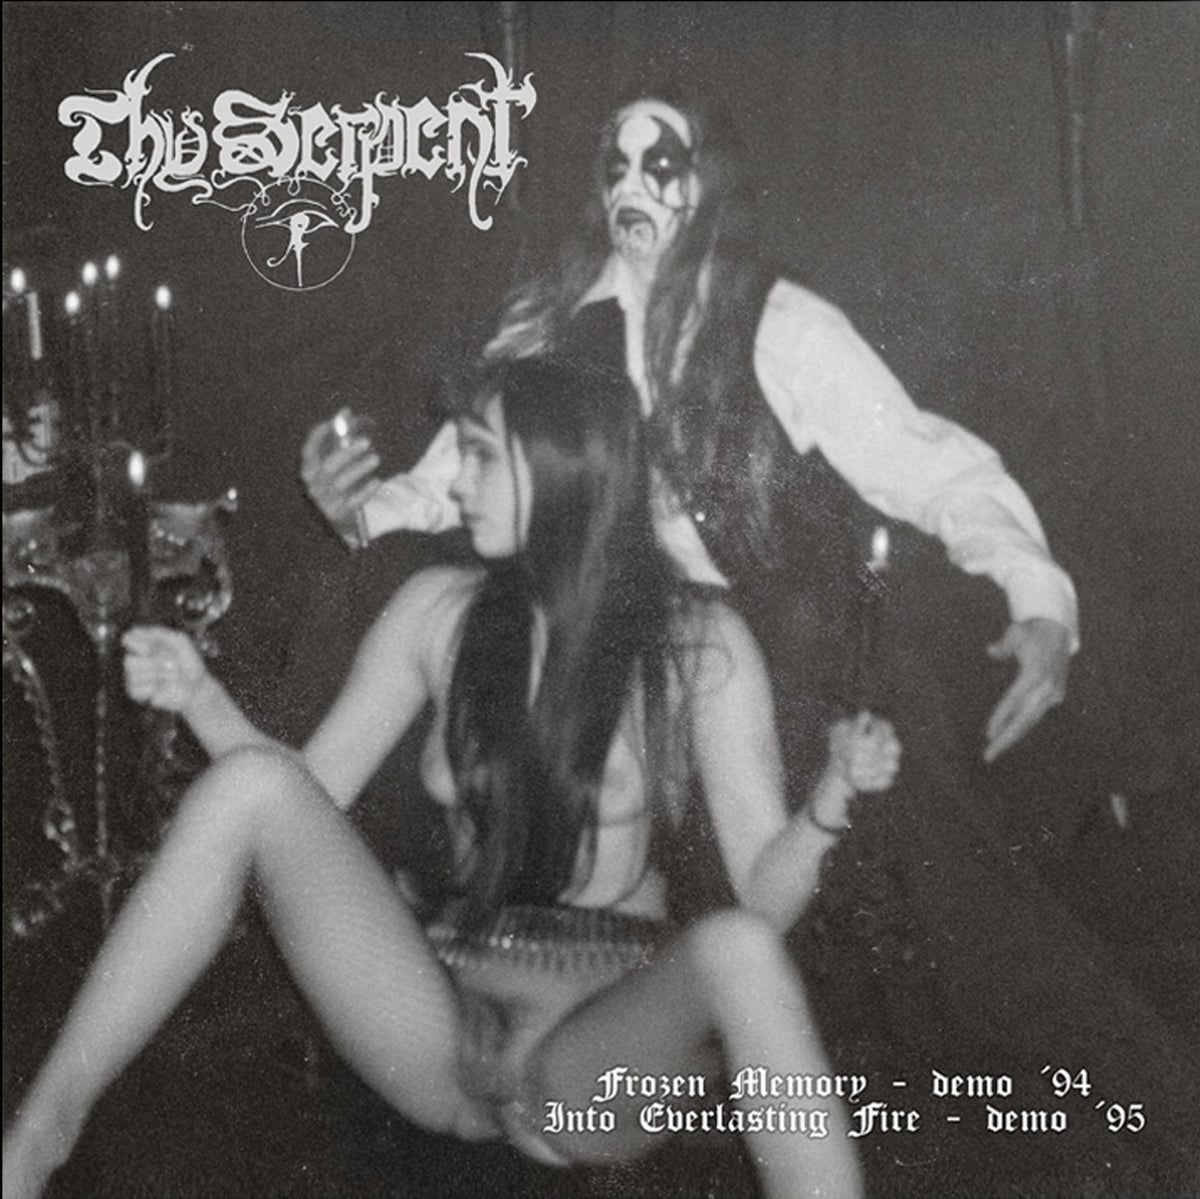 THY SERPENT -Frozen Memory / Into Everlasting Fire- DLP (SALT N' PEPPER)